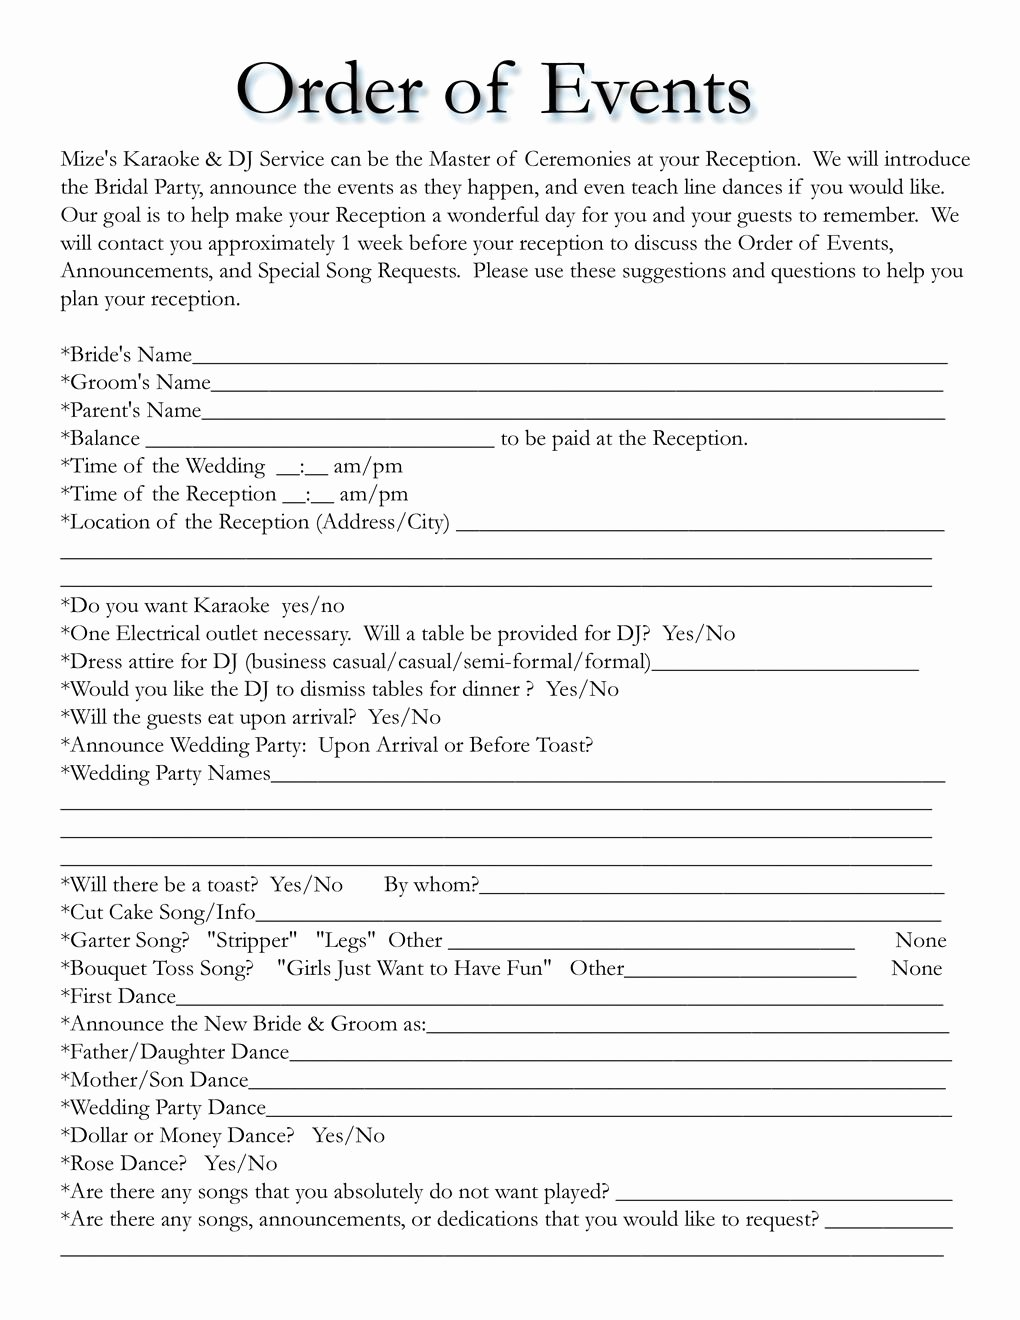 Wedding song List Template New Wedding Itinerary Templates Free